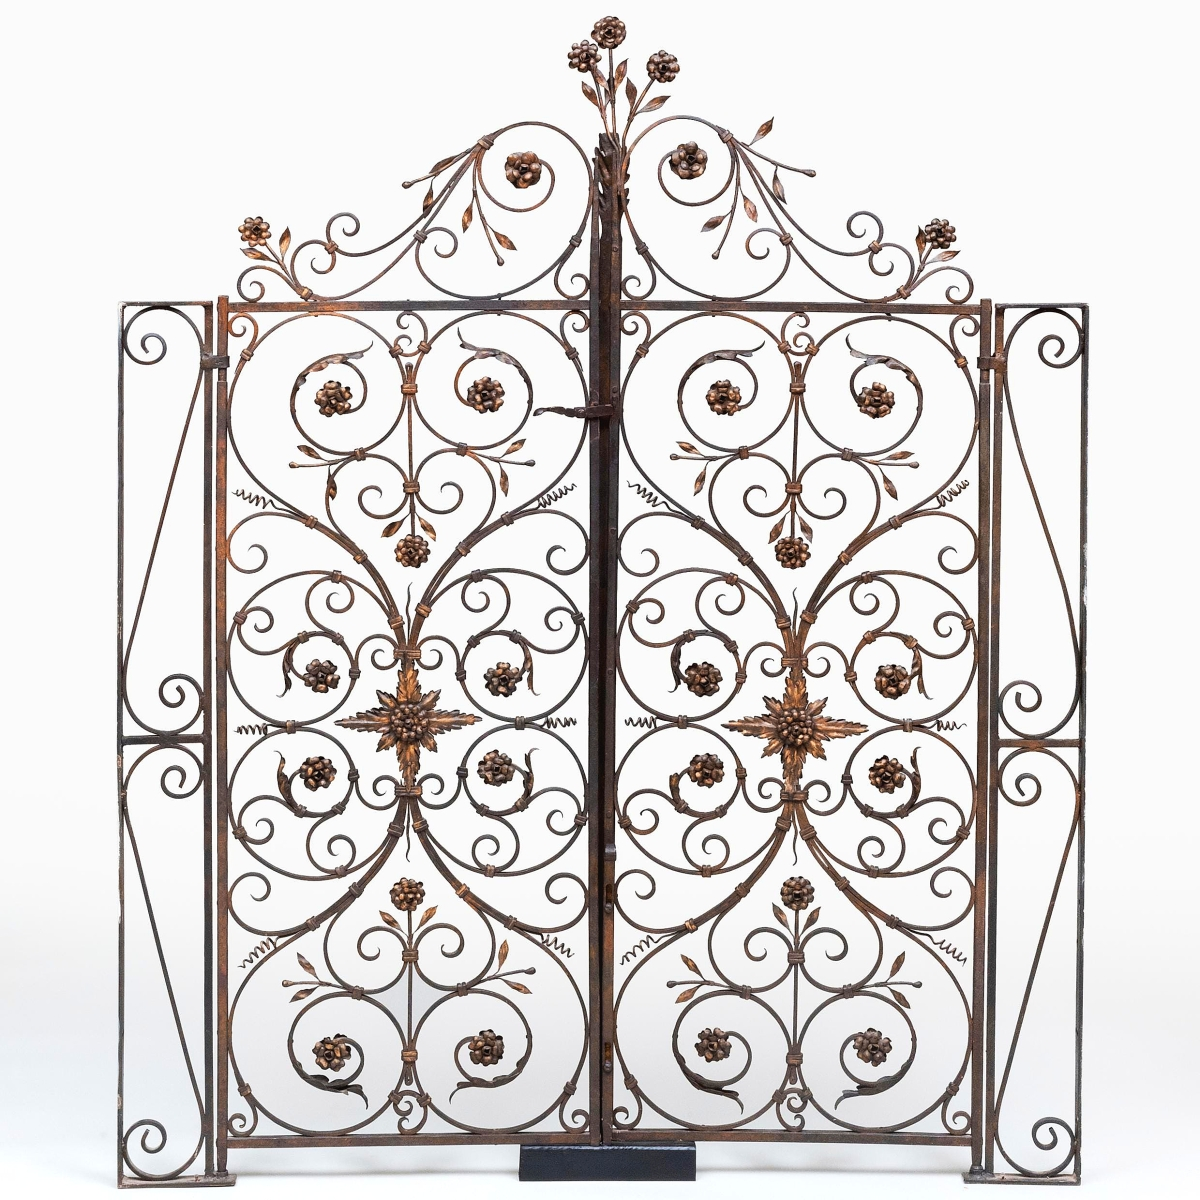 Pellettieri's keen eye for quality was not relegated to just furniture, sculpture and decorative arts. It was also evident in this Italian iron and parcel-gilt hinged gate, possibly from Florence, Italy, standing 6 feet 1½ inches high and 5 feet wide. Reaching $27,000 from an estimate of $1,5/3,000, it was the top lot of the sale.